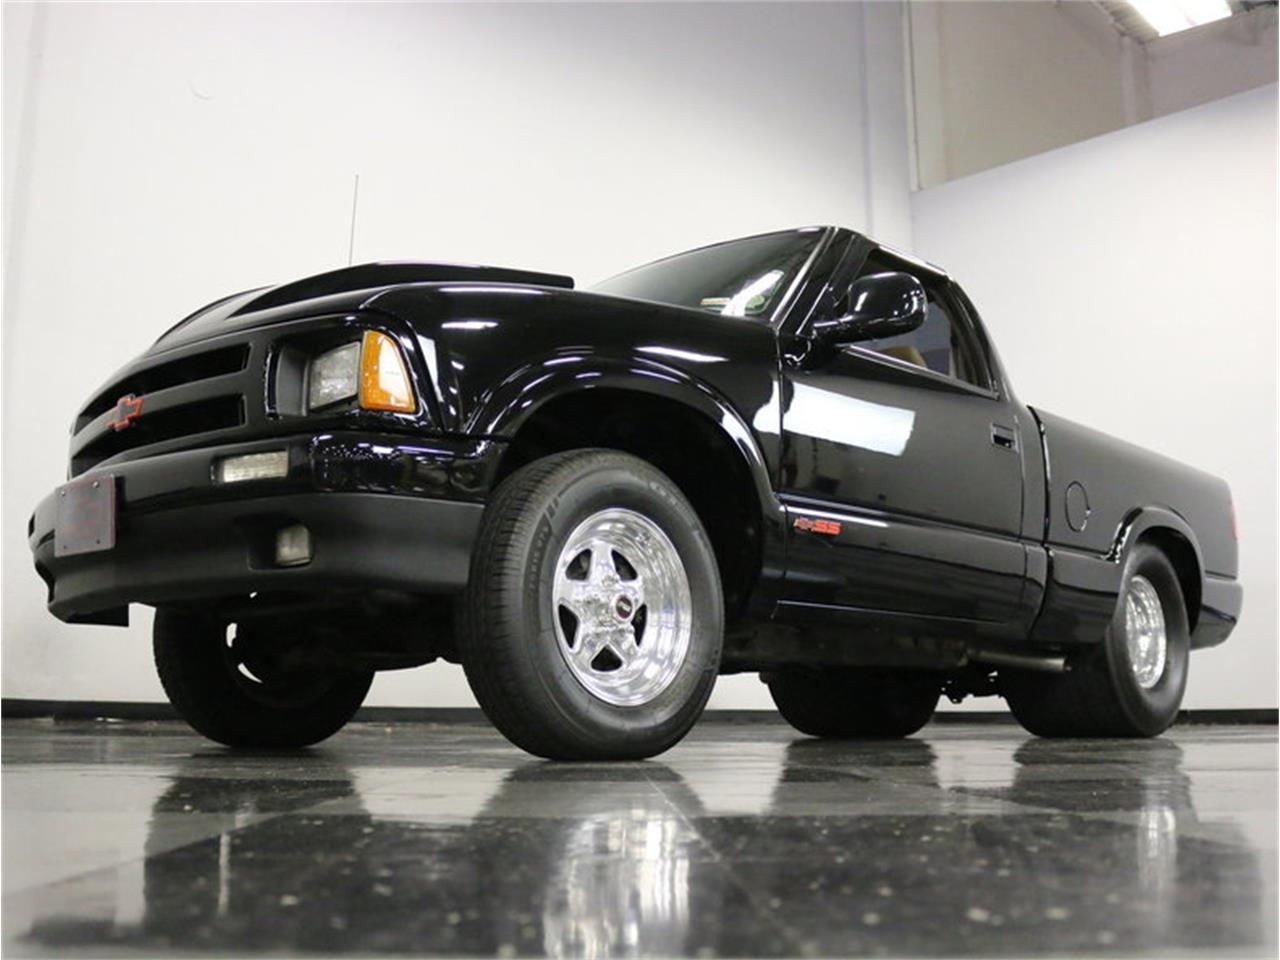 Large Picture of '95 Chevrolet S-10 SS Pro Street located in Texas Offered by Streetside Classics - Dallas / Fort Worth - MOBZ